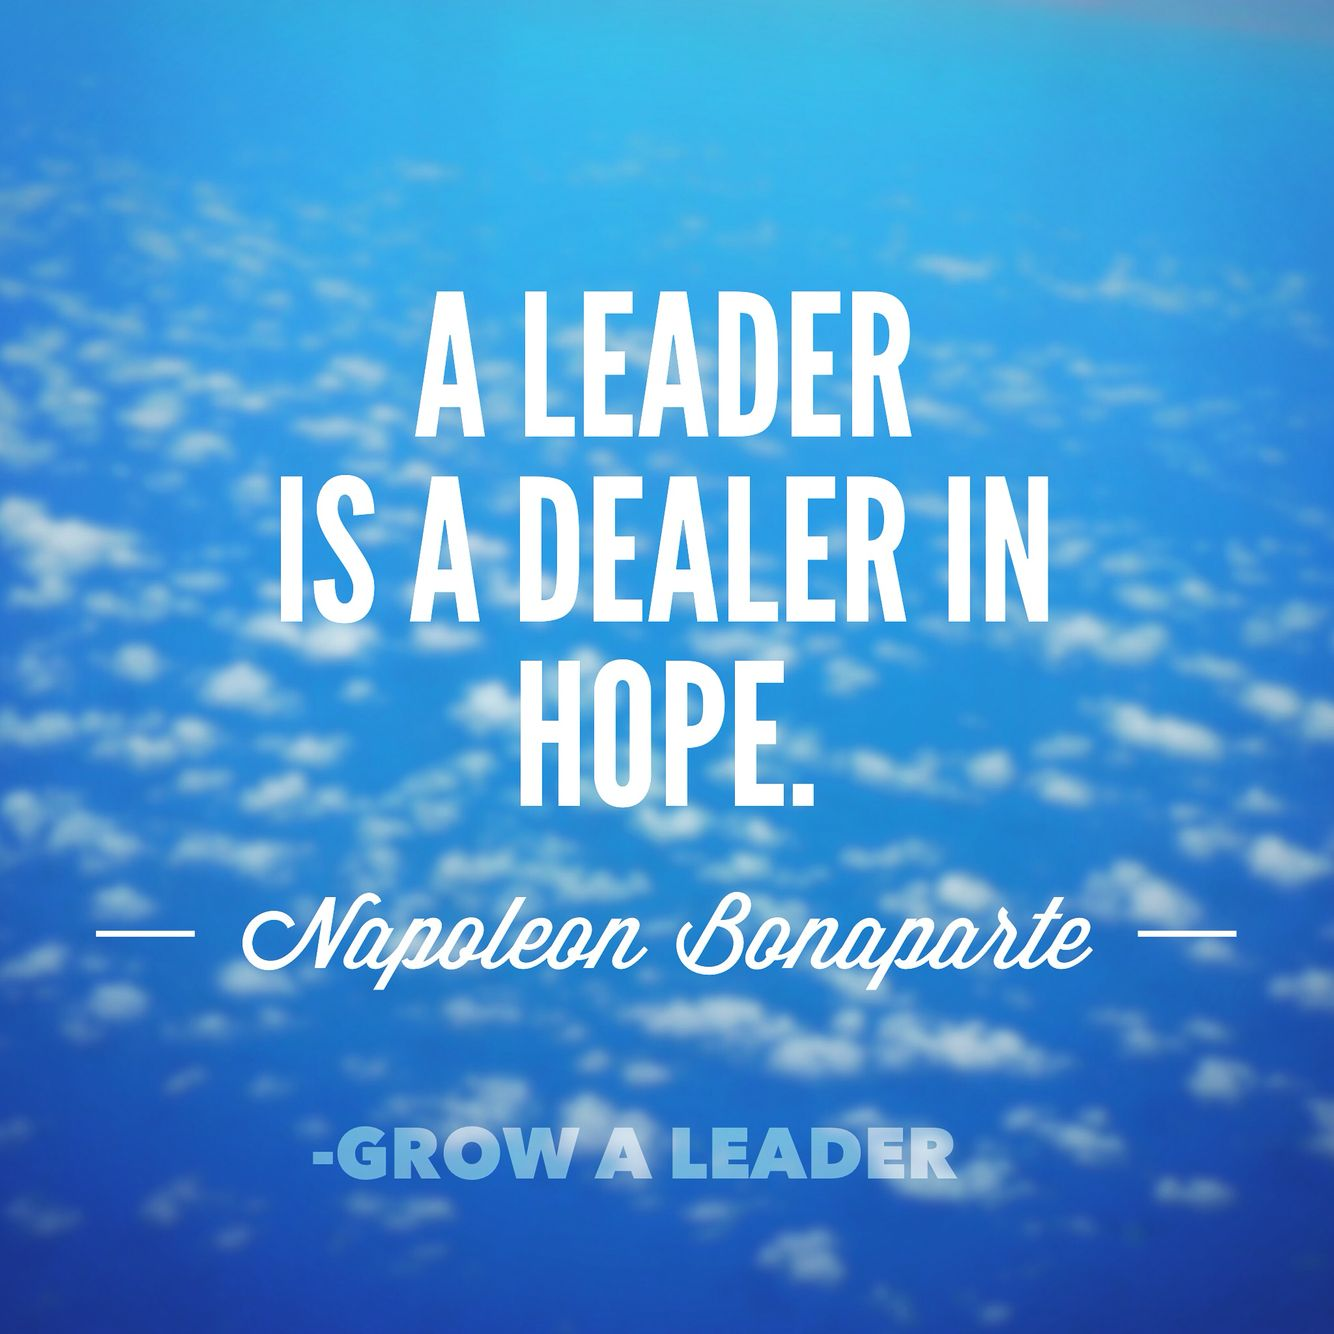 Making A Difference Quotes A Leader Is A Dealer In Hopebonaparte Bring Hope To Someone And